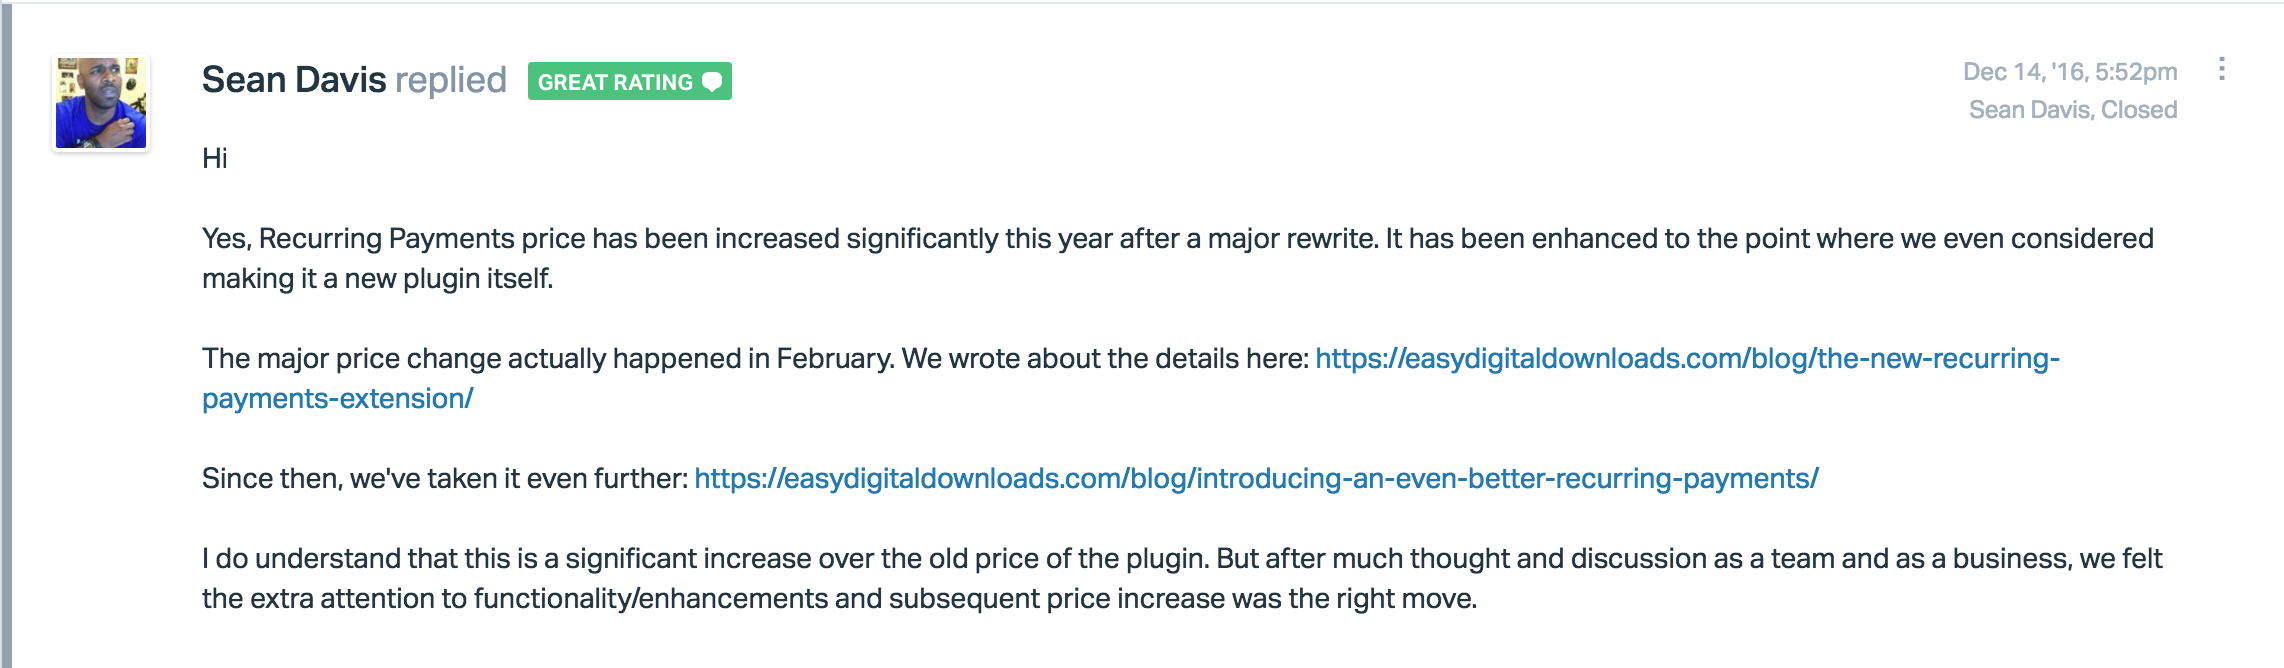 Reflection on a price increase pippins plugins awesome thanks for the explanation ill look forward to exploring the features spiritdancerdesigns Image collections